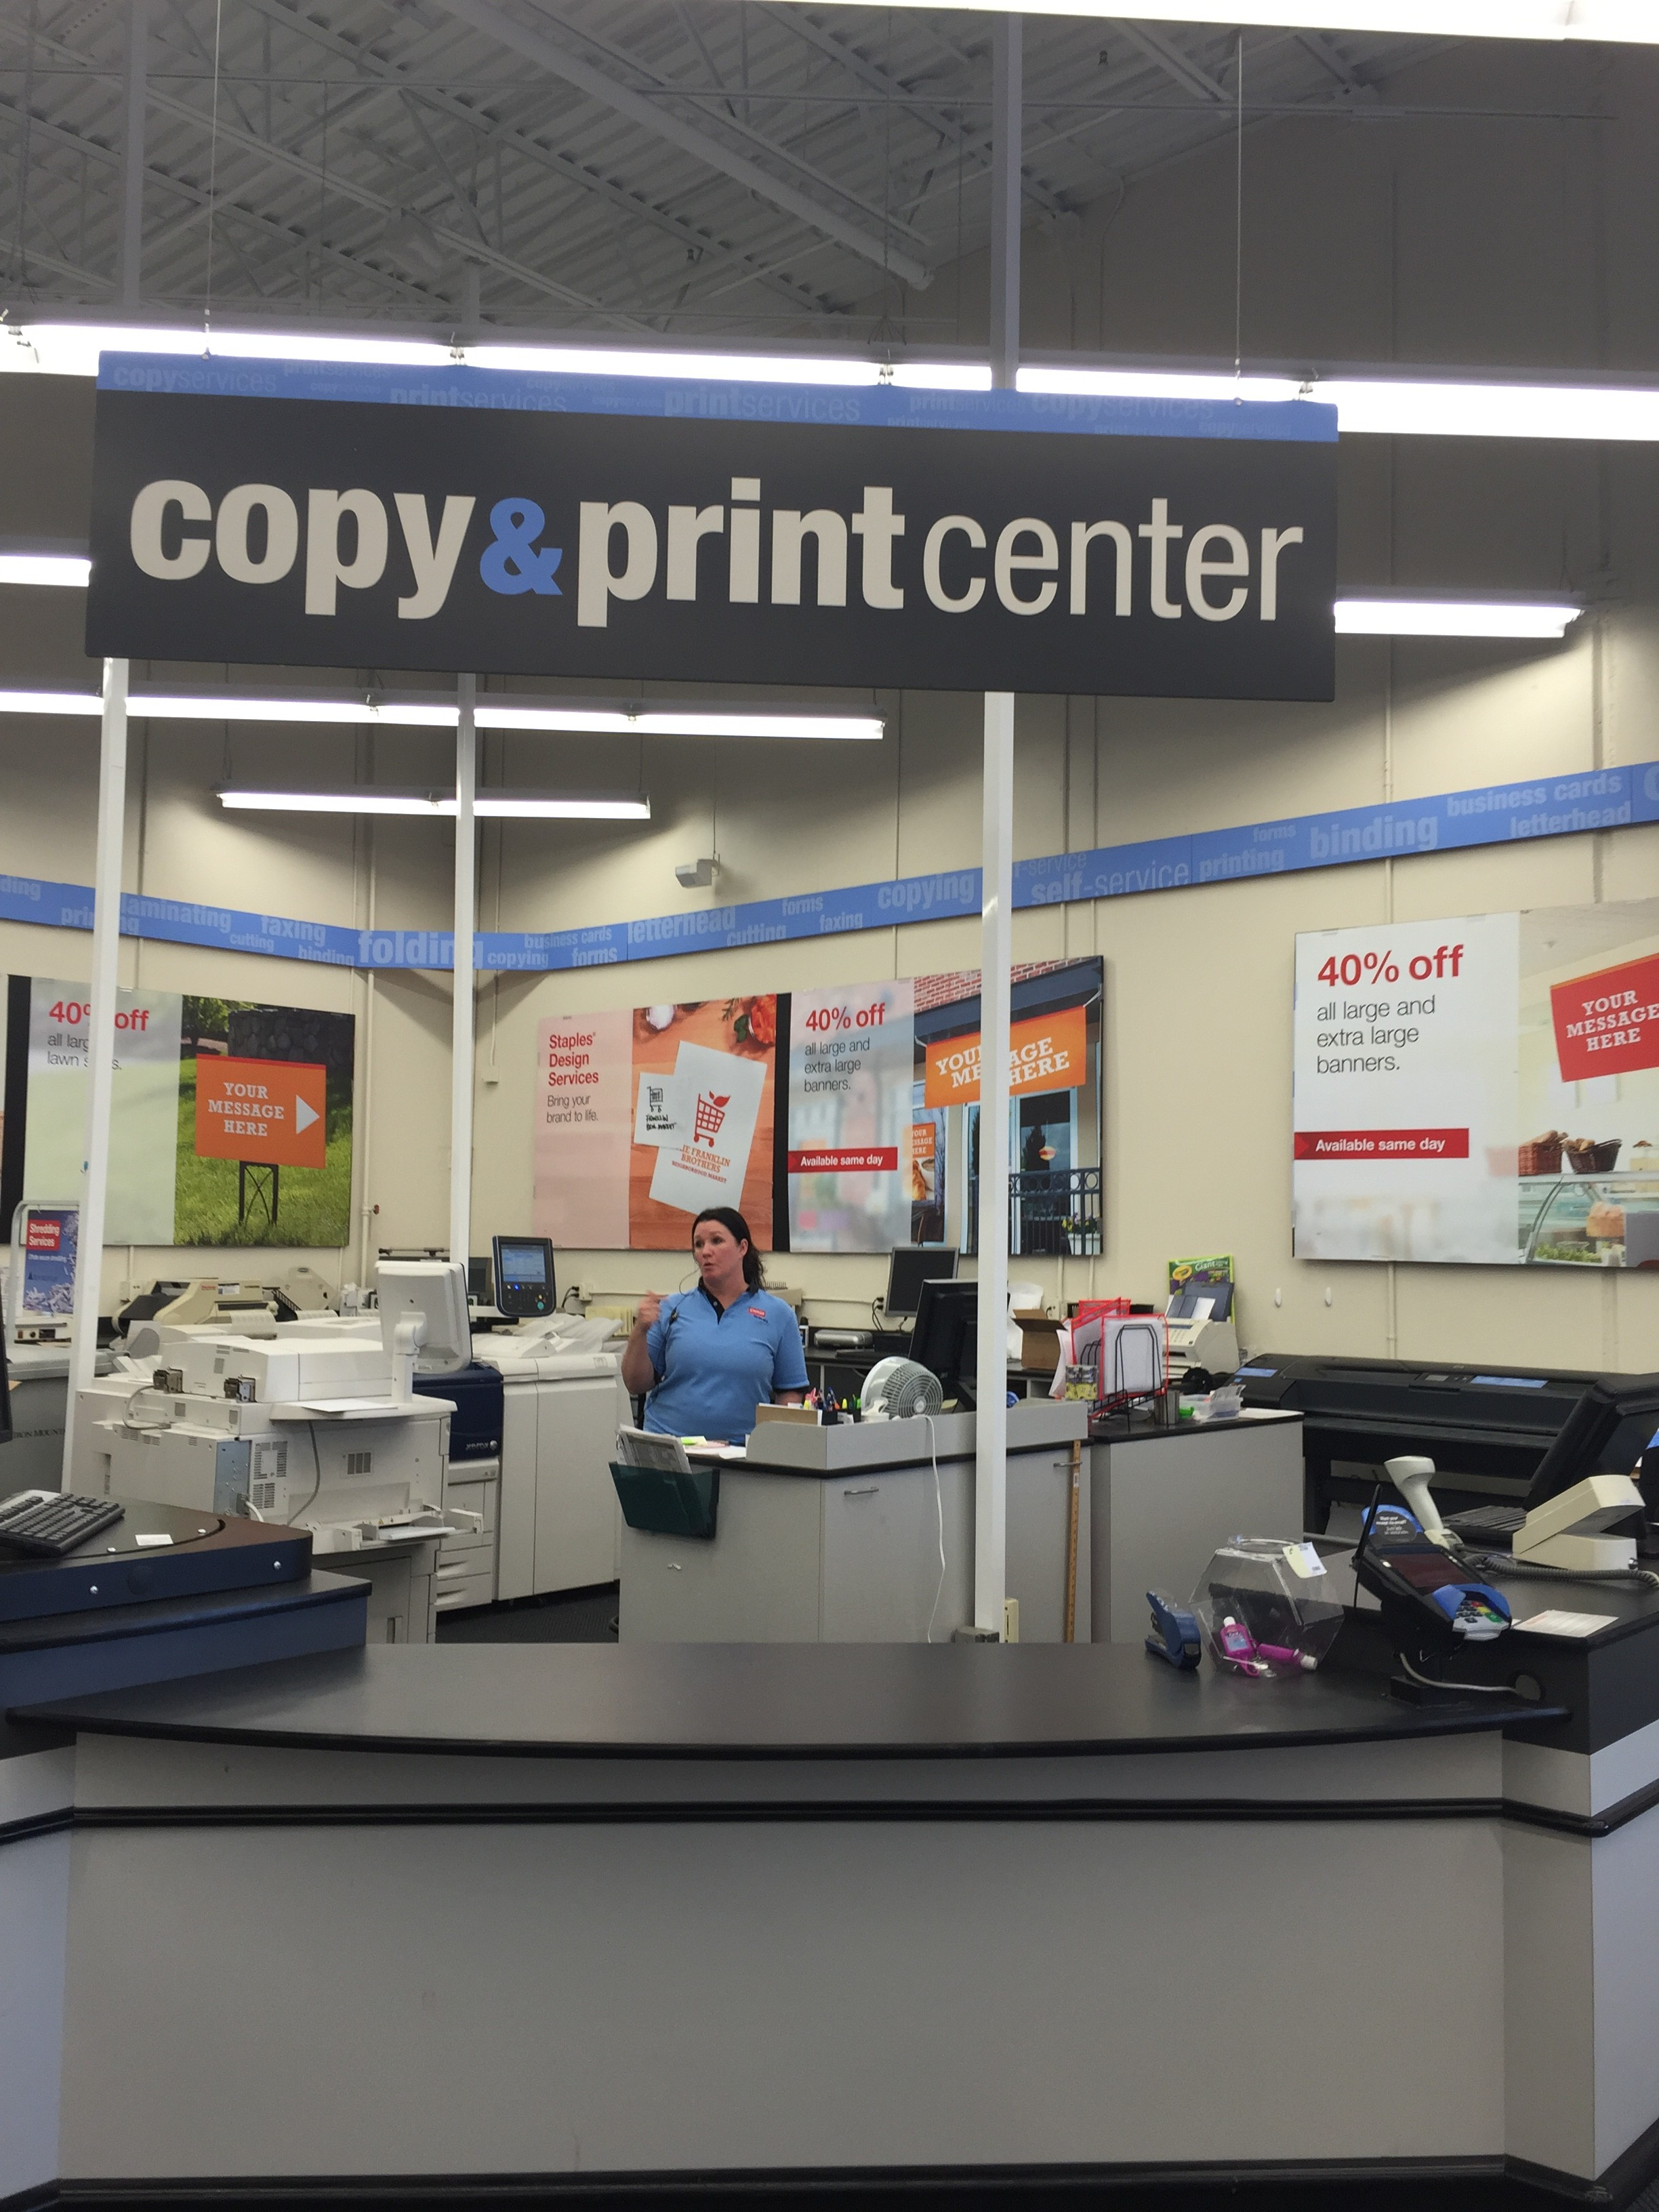 Print your business's logo on thousands of high-quality products with printing services at xhballmill.tk Make more happen with Staples® Copy & Print.